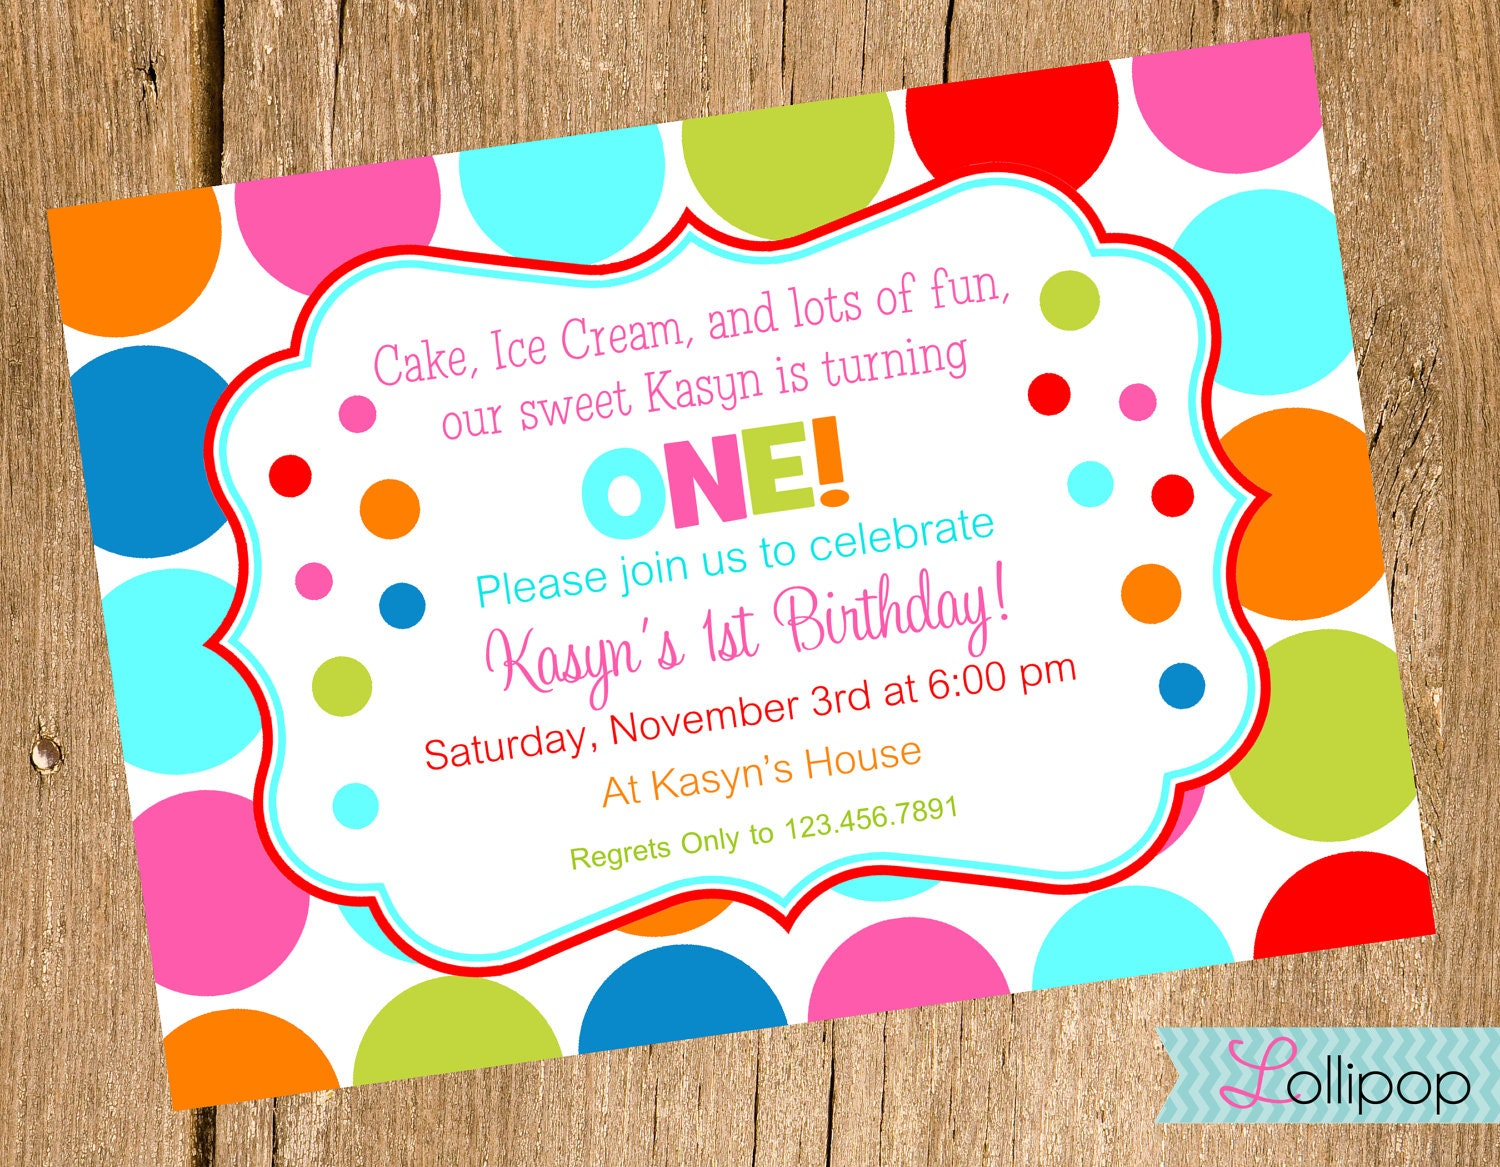 Skate Party Invitation with beautiful invitations ideas